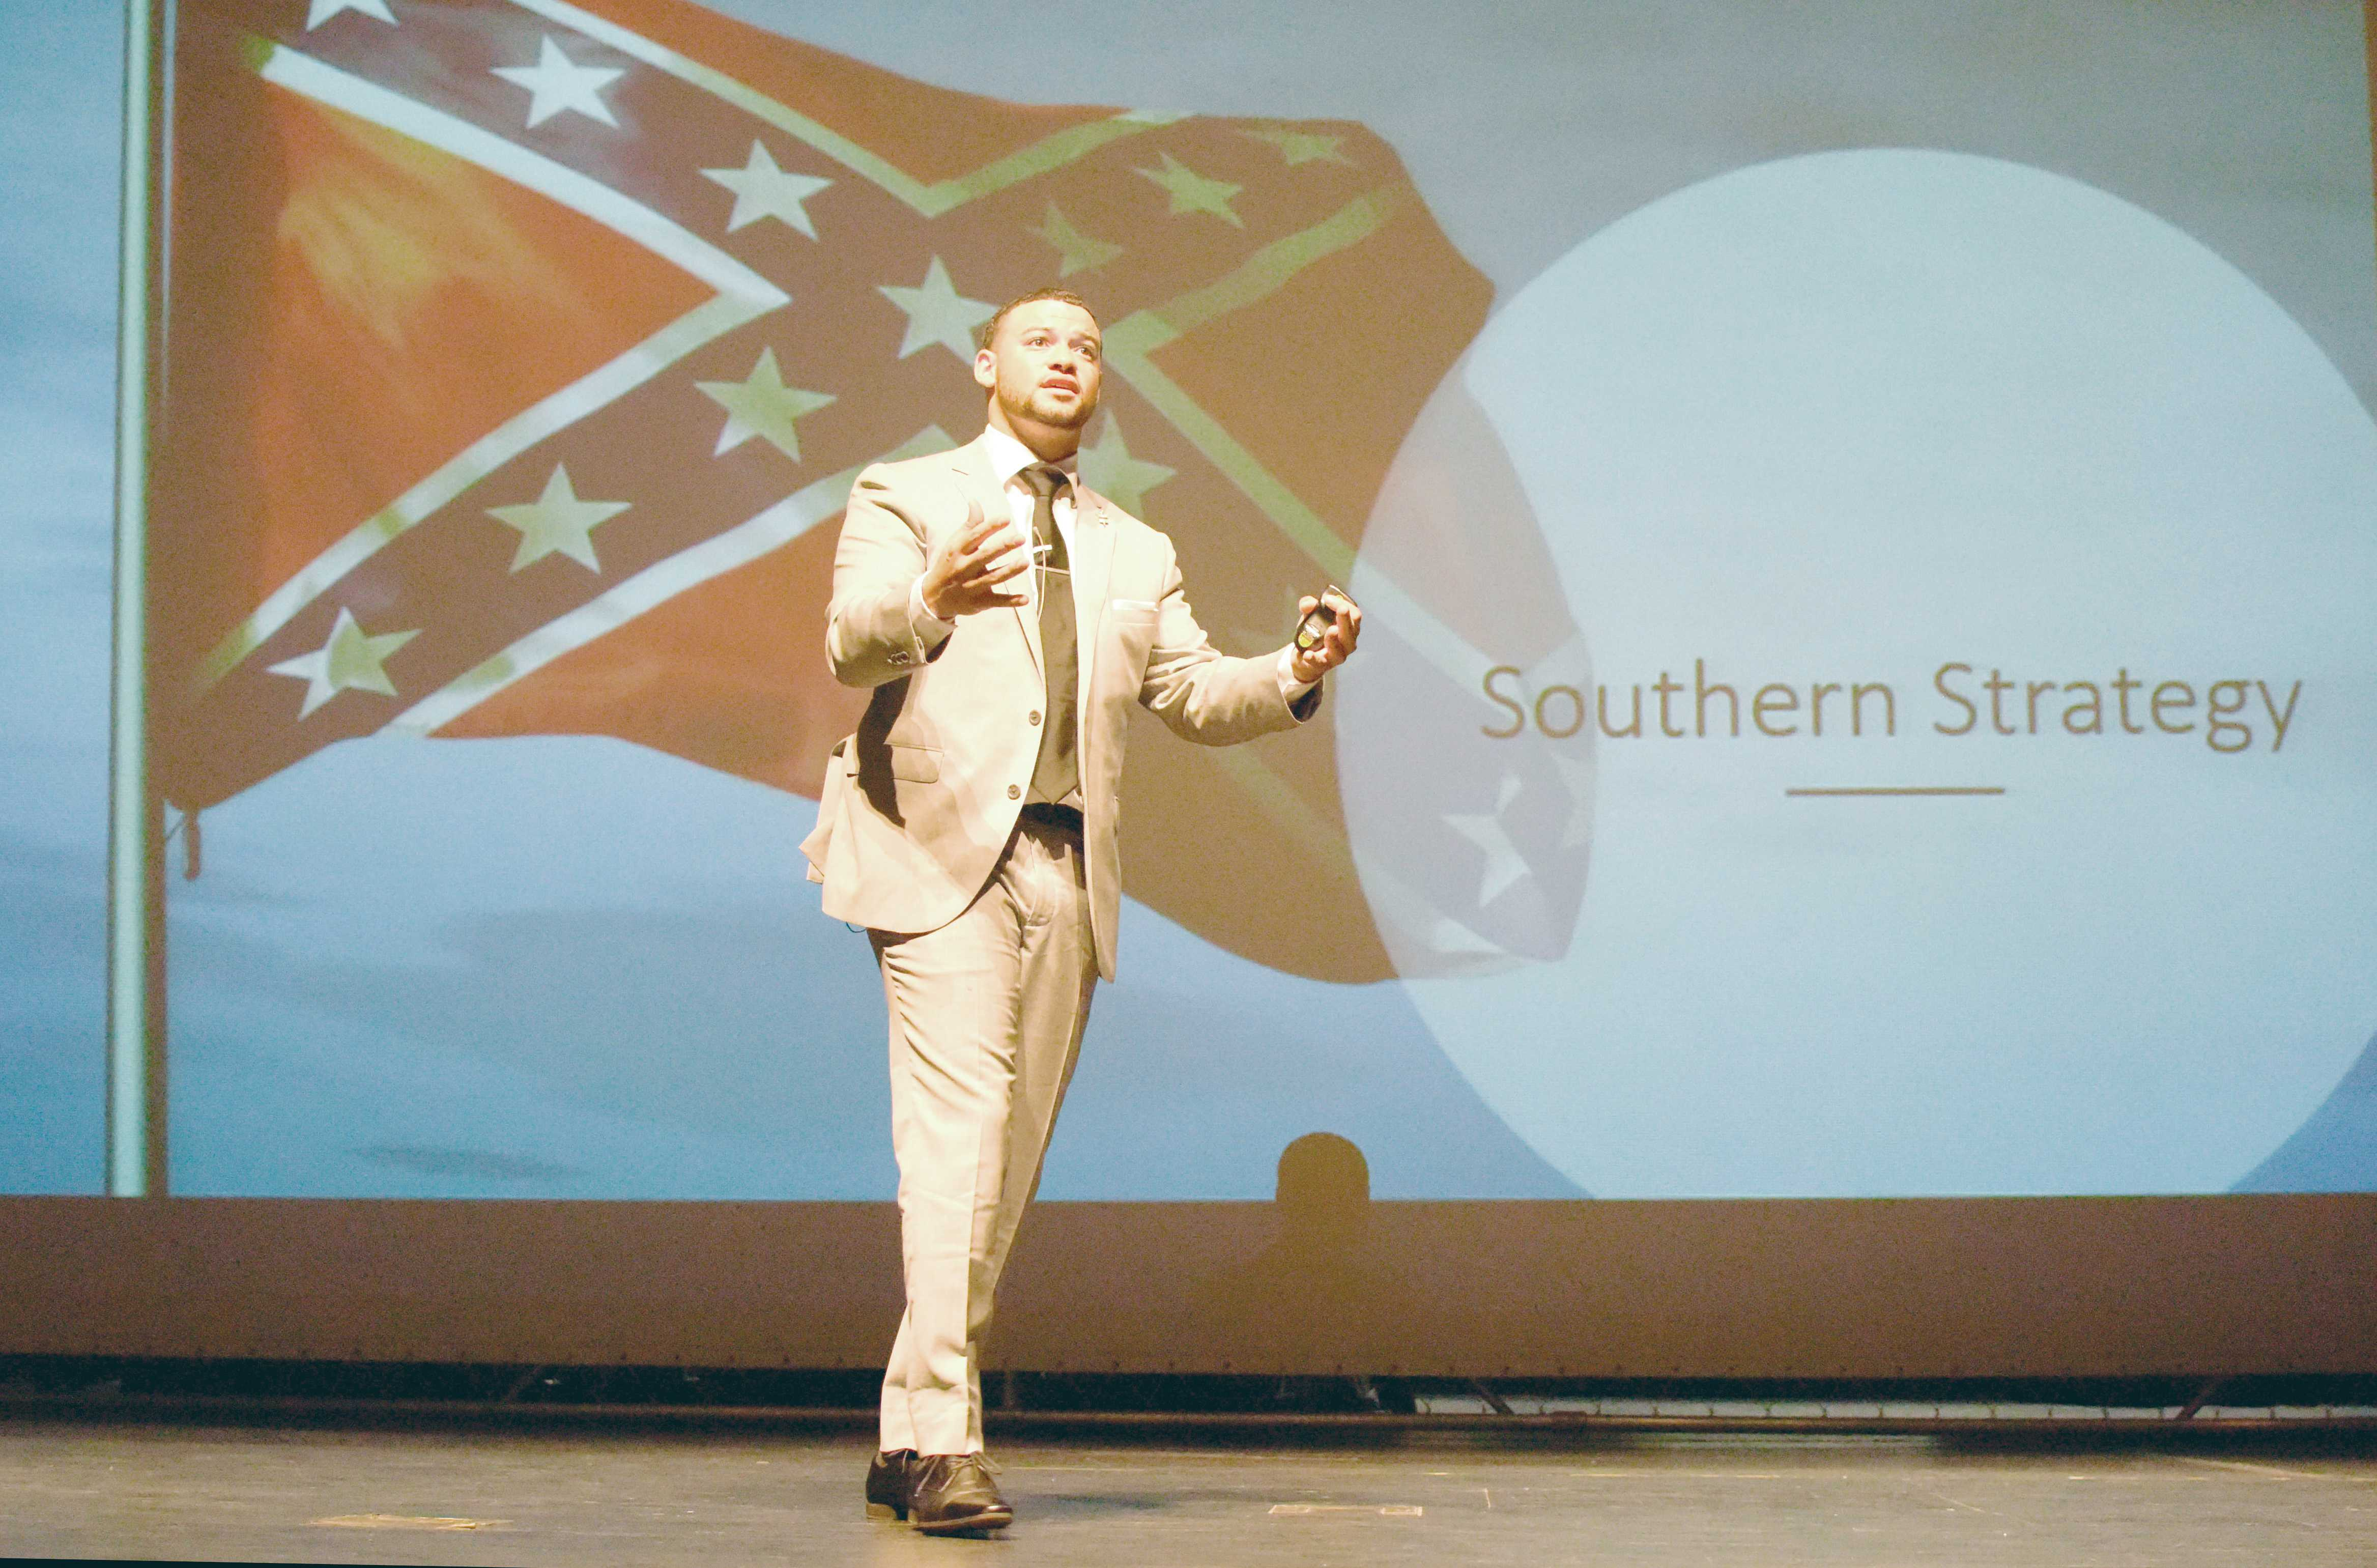 Photos by Brandon Donner |  James Elliot, Phi Theta Kappa Honor Society international president, said students need to lead the changes of the future at Brookhaven College Sept. 17.